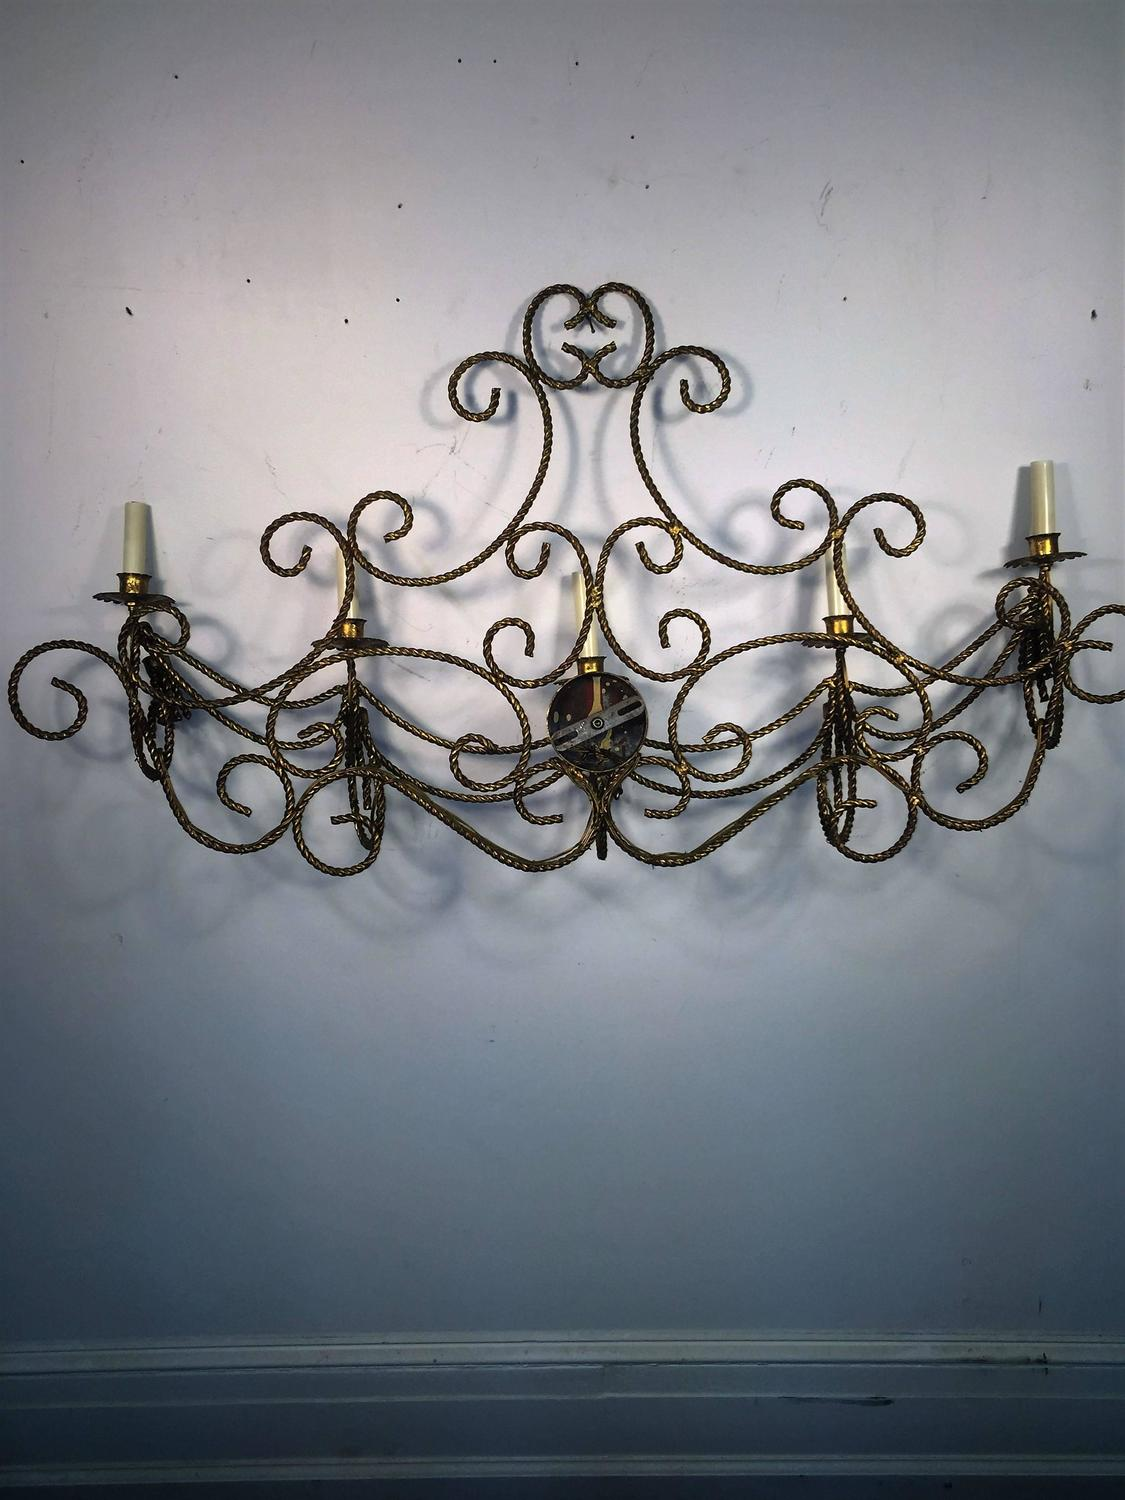 Monumental Pair of High End Italian Gilt Rope and Tassle Design Sconces For Sale at 1stdibs